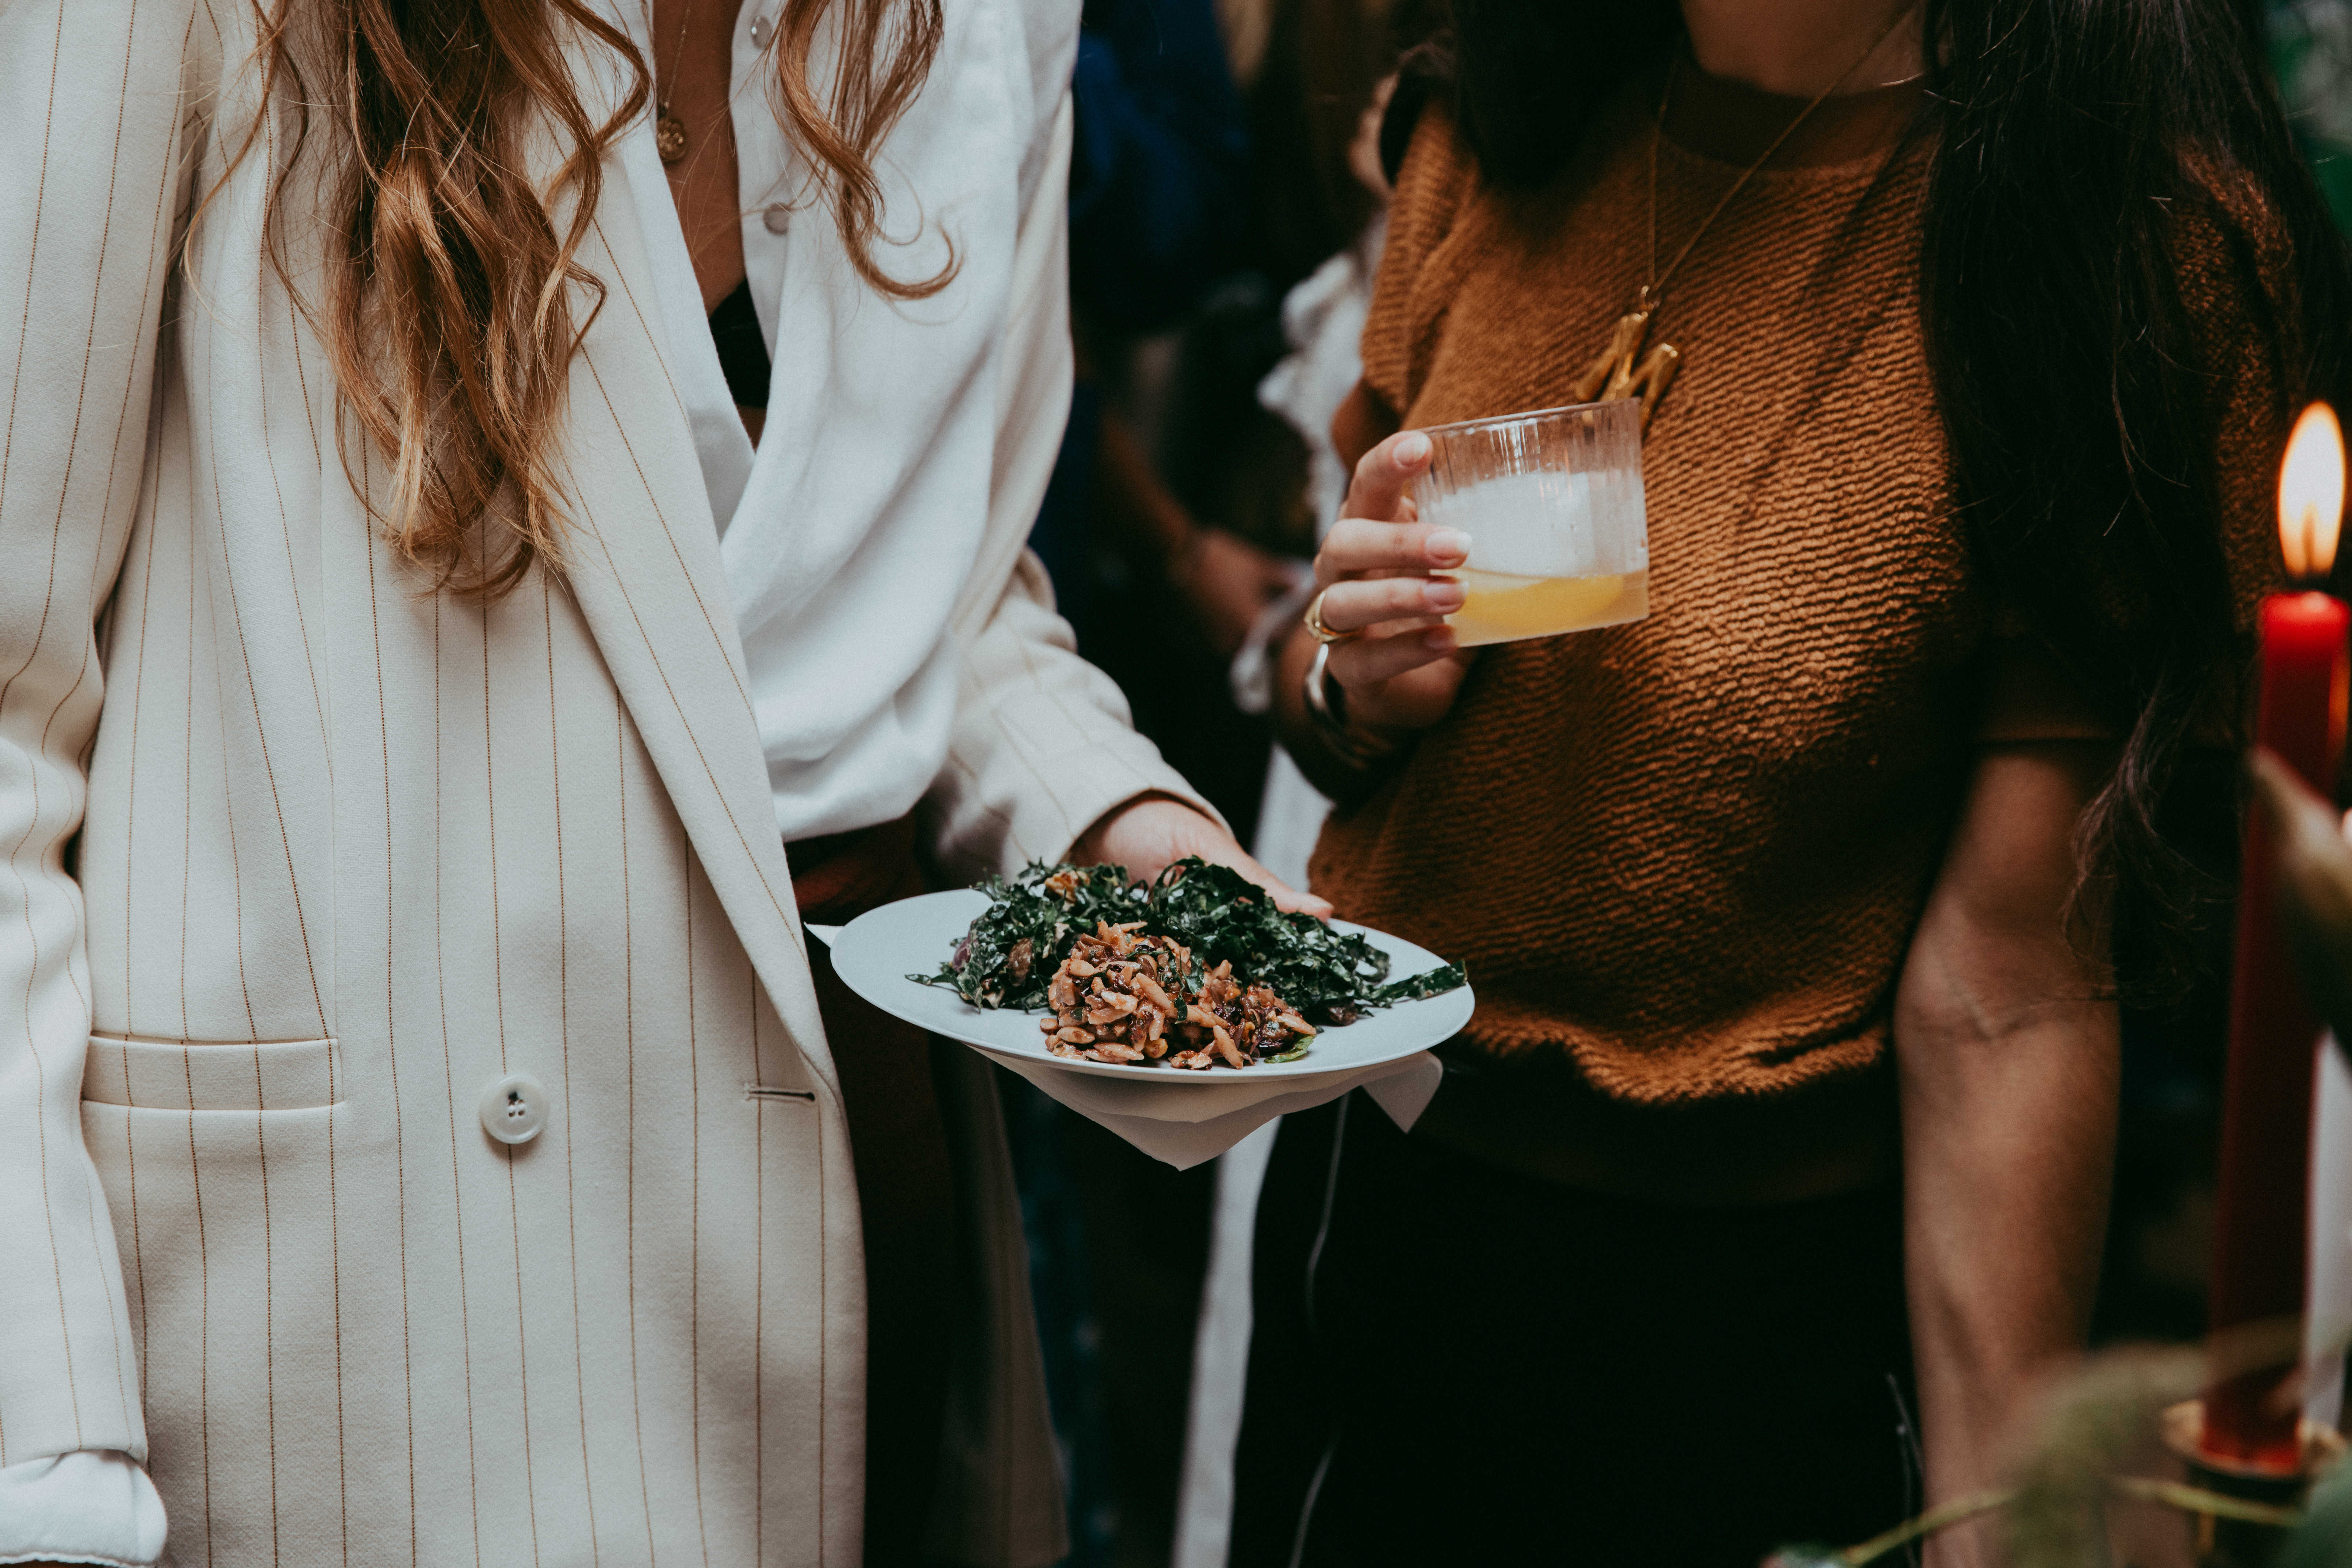 Two cocktail party guests enjoying a cocktail, small bites and conversation.